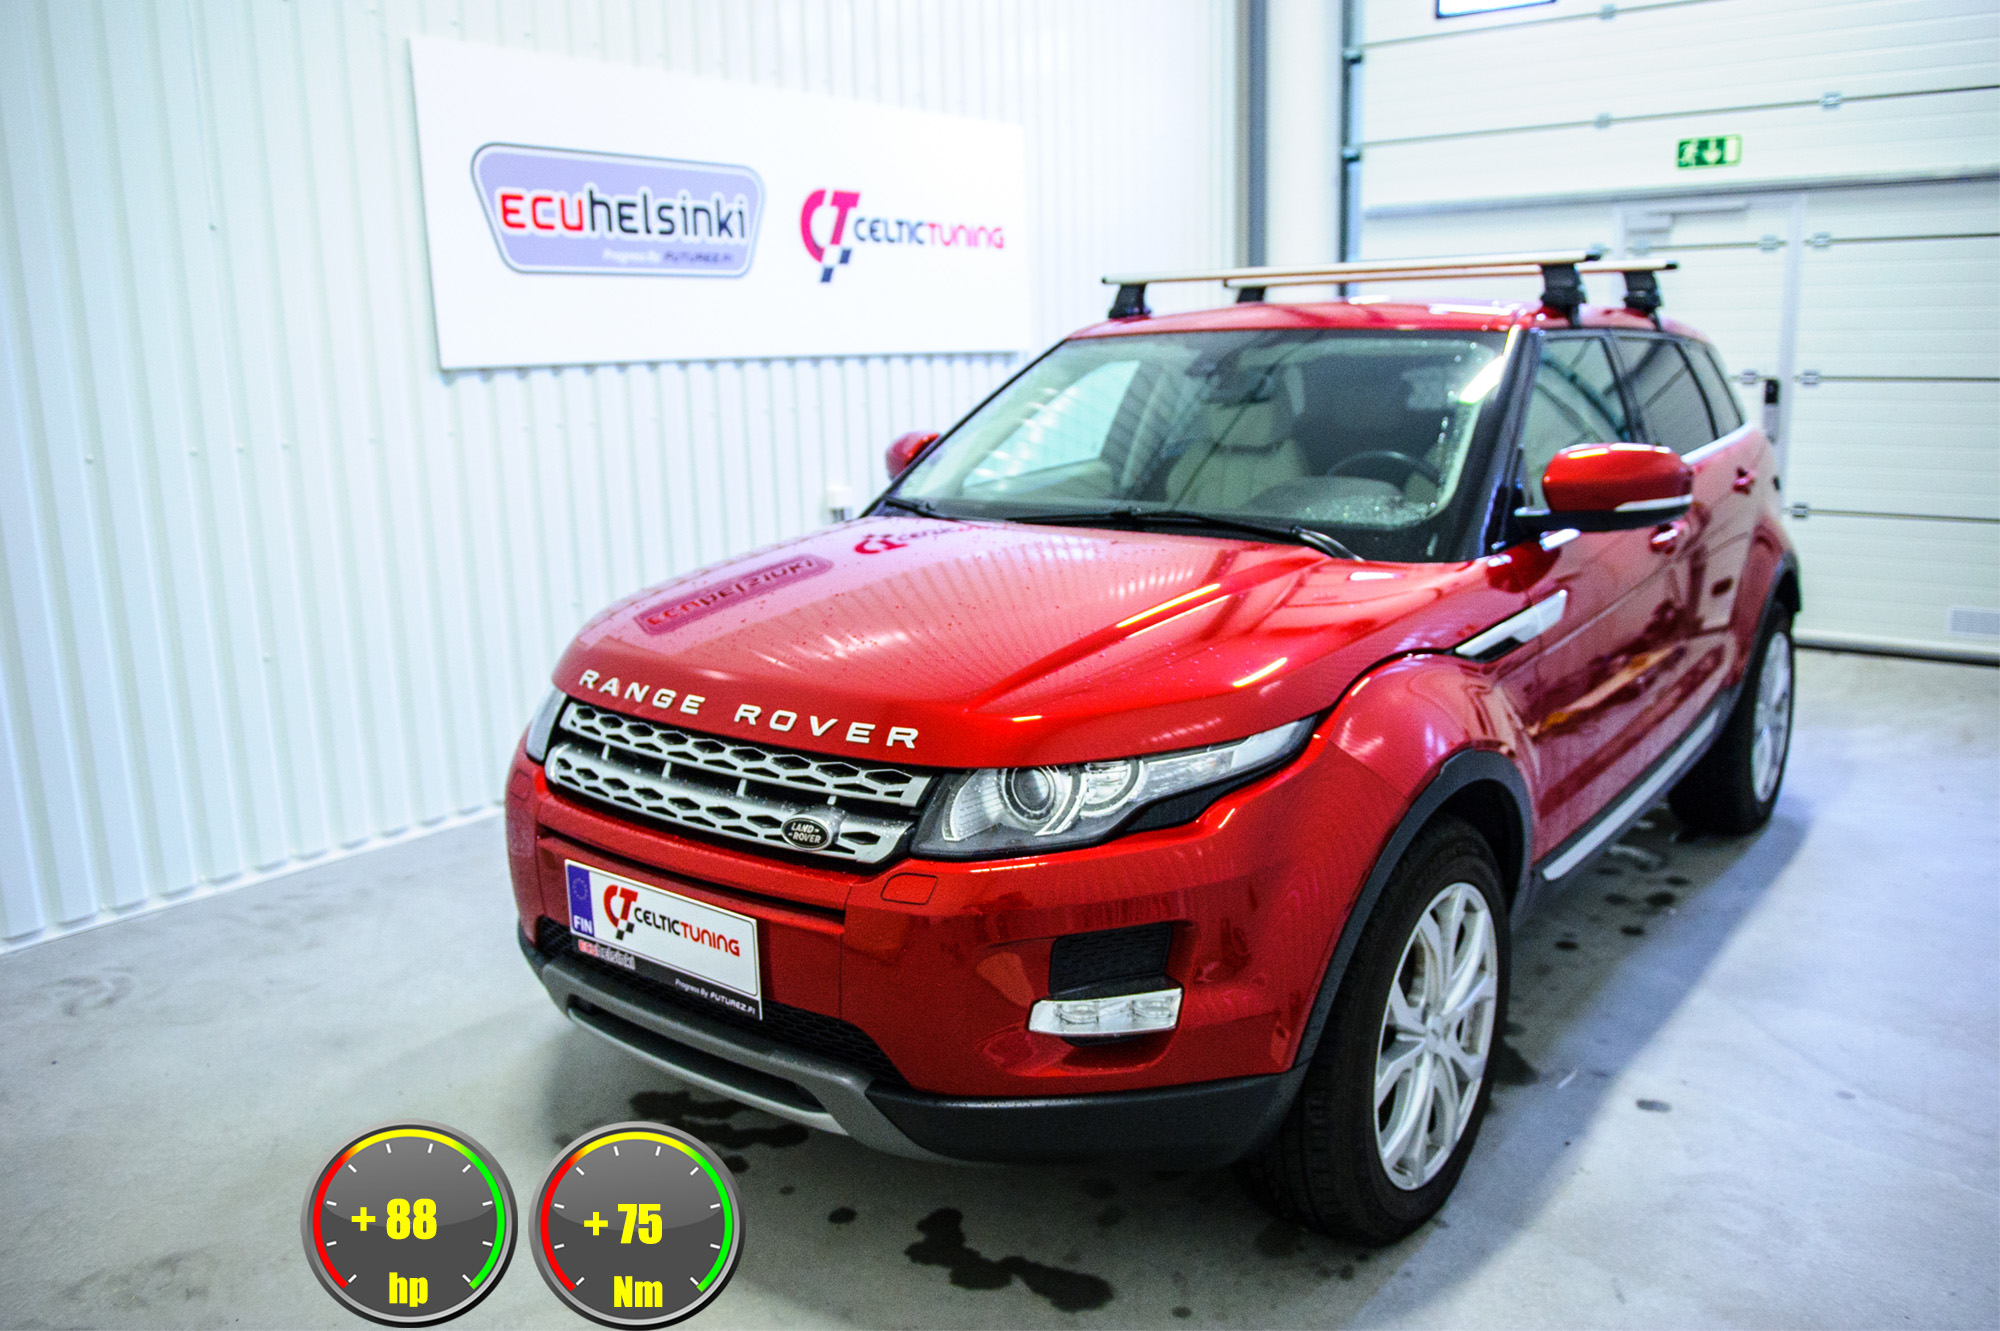 Range rover evoque optimointi